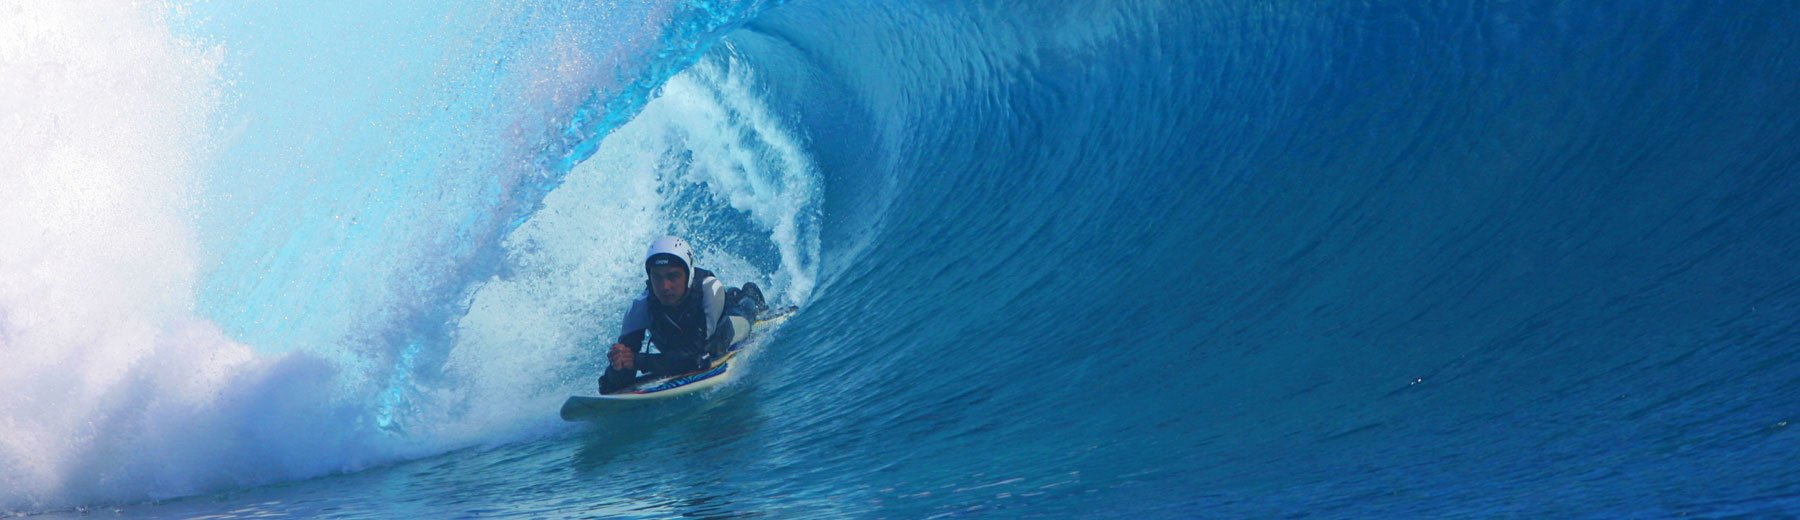 Jesse Billauer, a world champion quadriplegic surfer and inspirational speaker, riding a wave